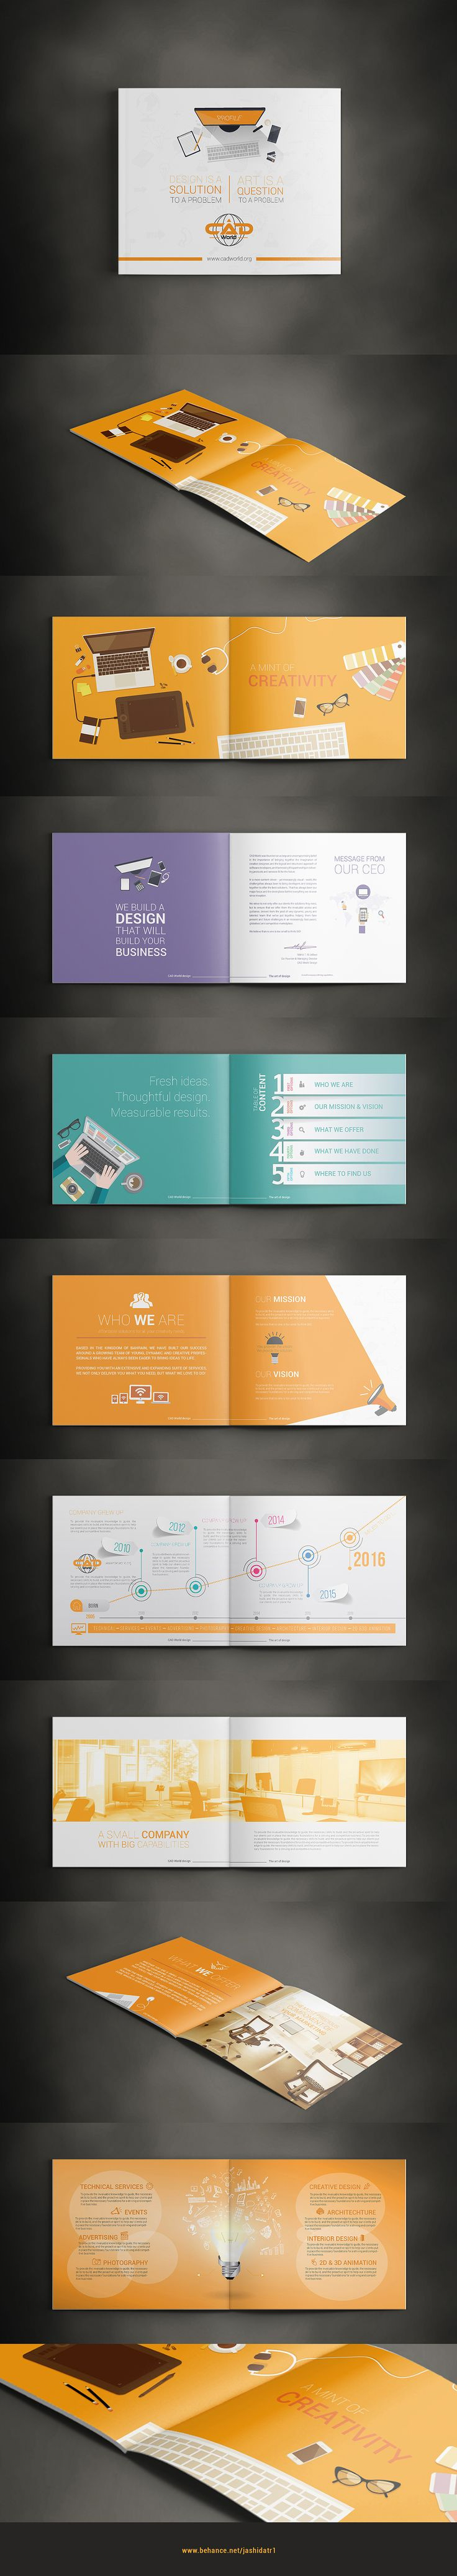 Creative Company Profile on Behance                                                                                                                                                                                 More                                                                                                                                                                                 More